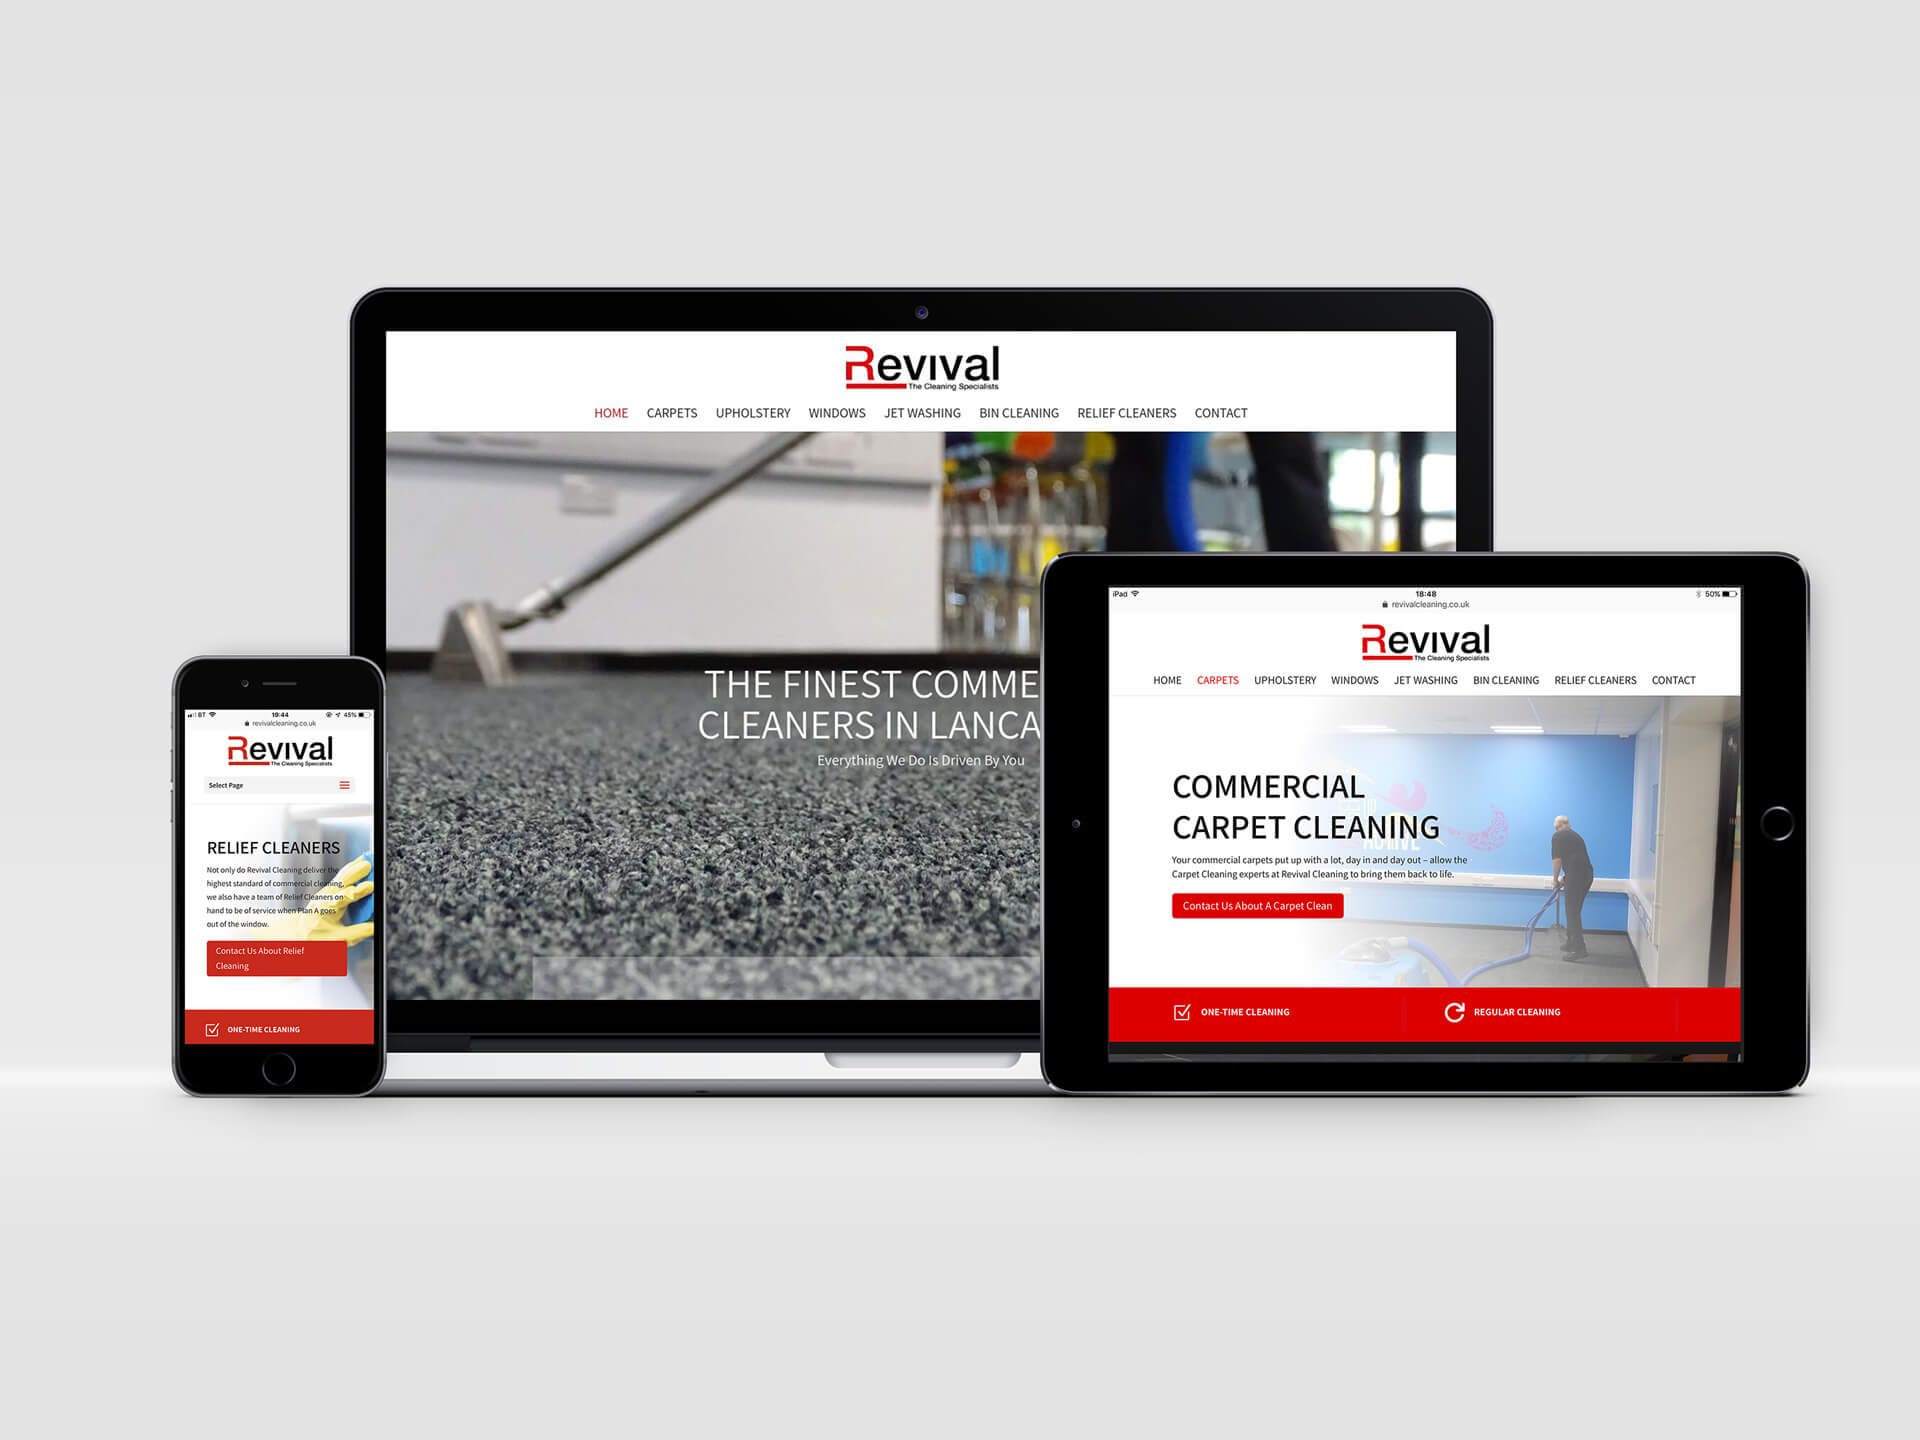 Revival Cleaning Website Design